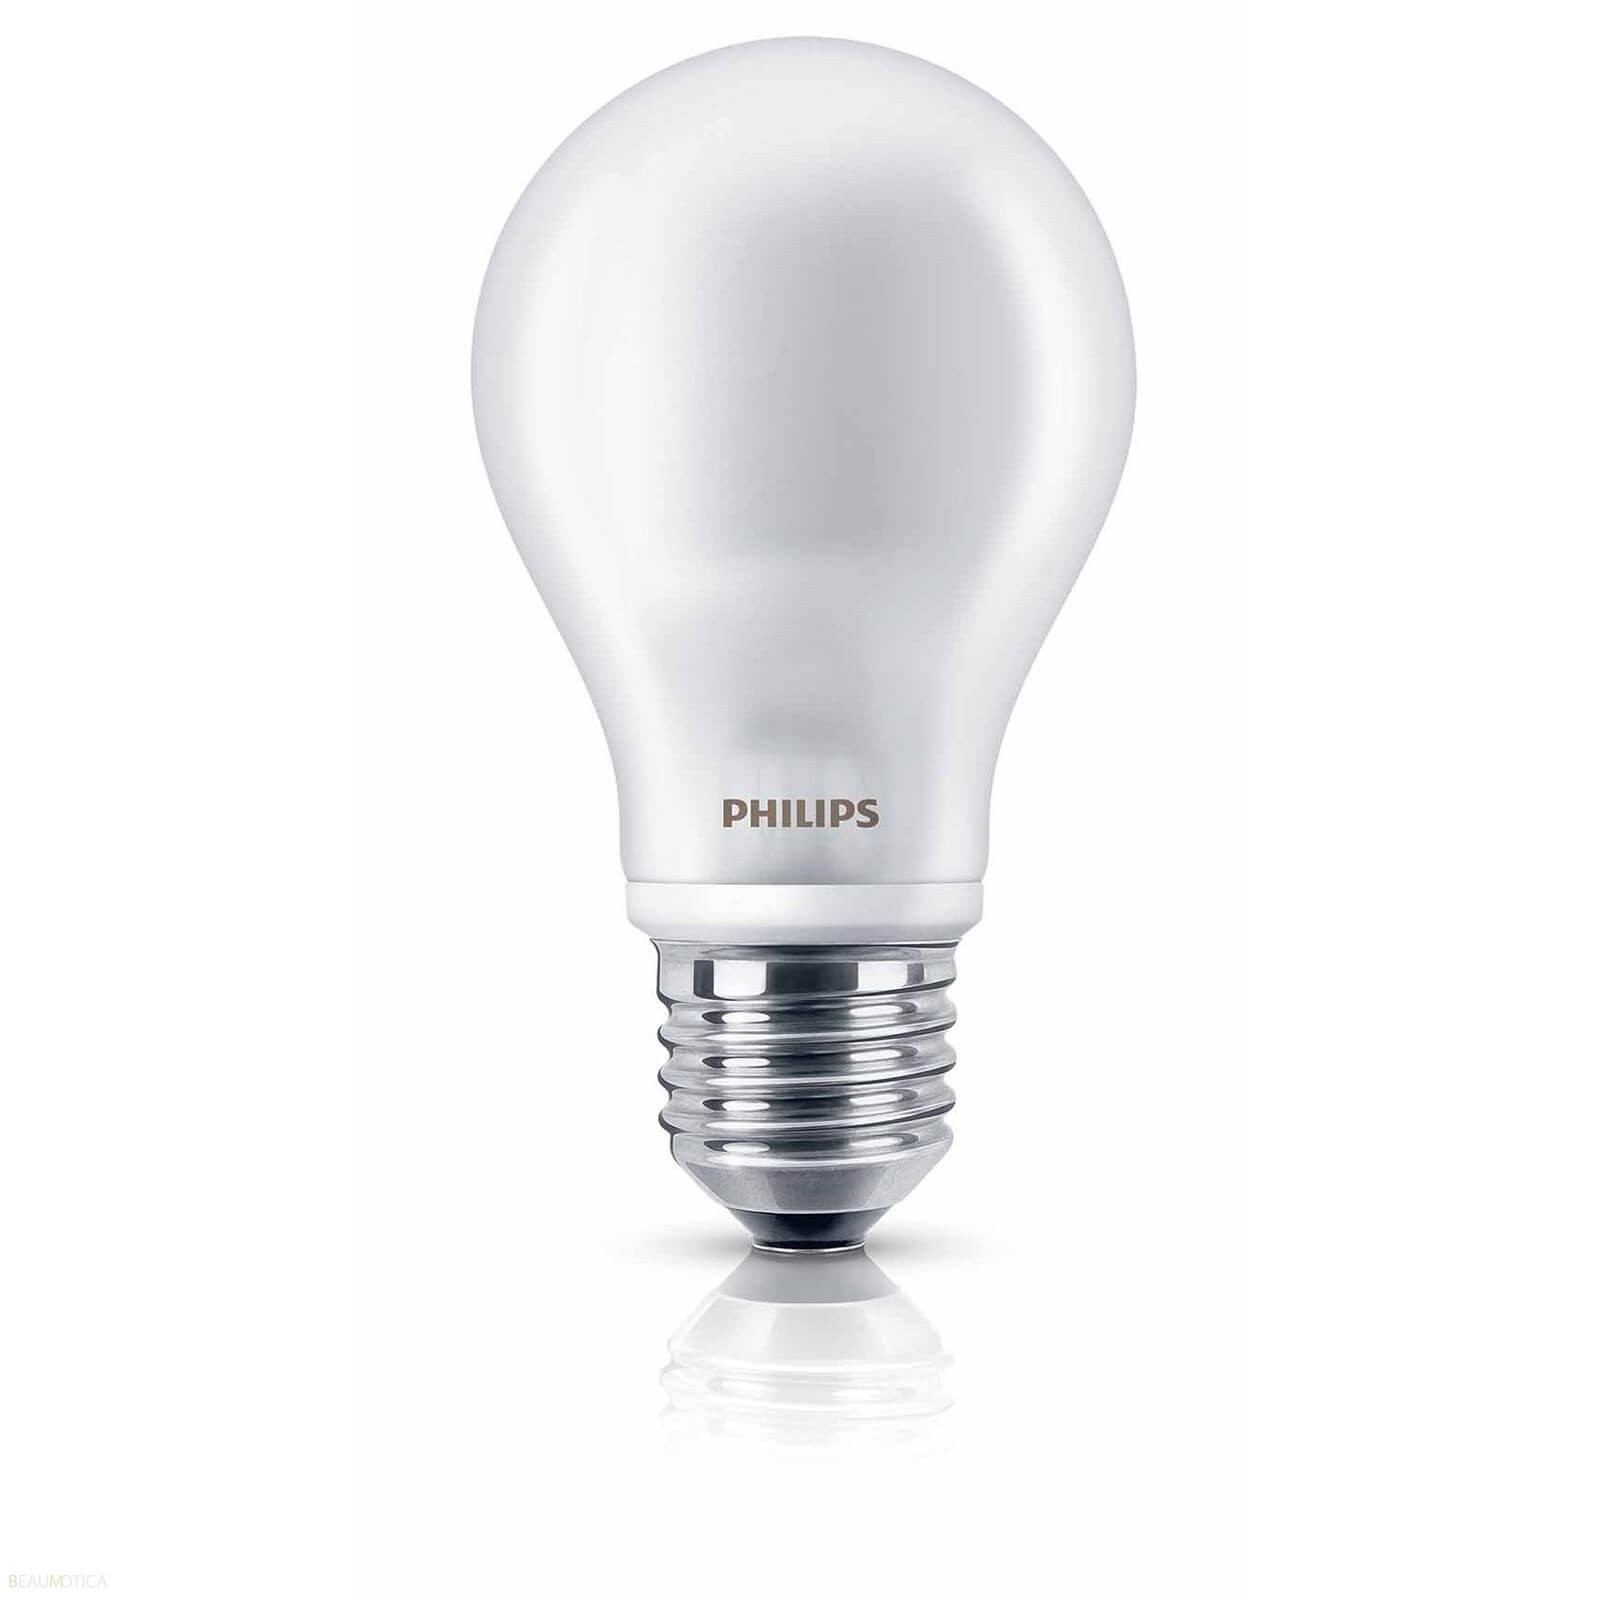 Philips led lampen e27 grote fitting philips led lampen philips led lamp classic 40w e27 parisarafo Image collections